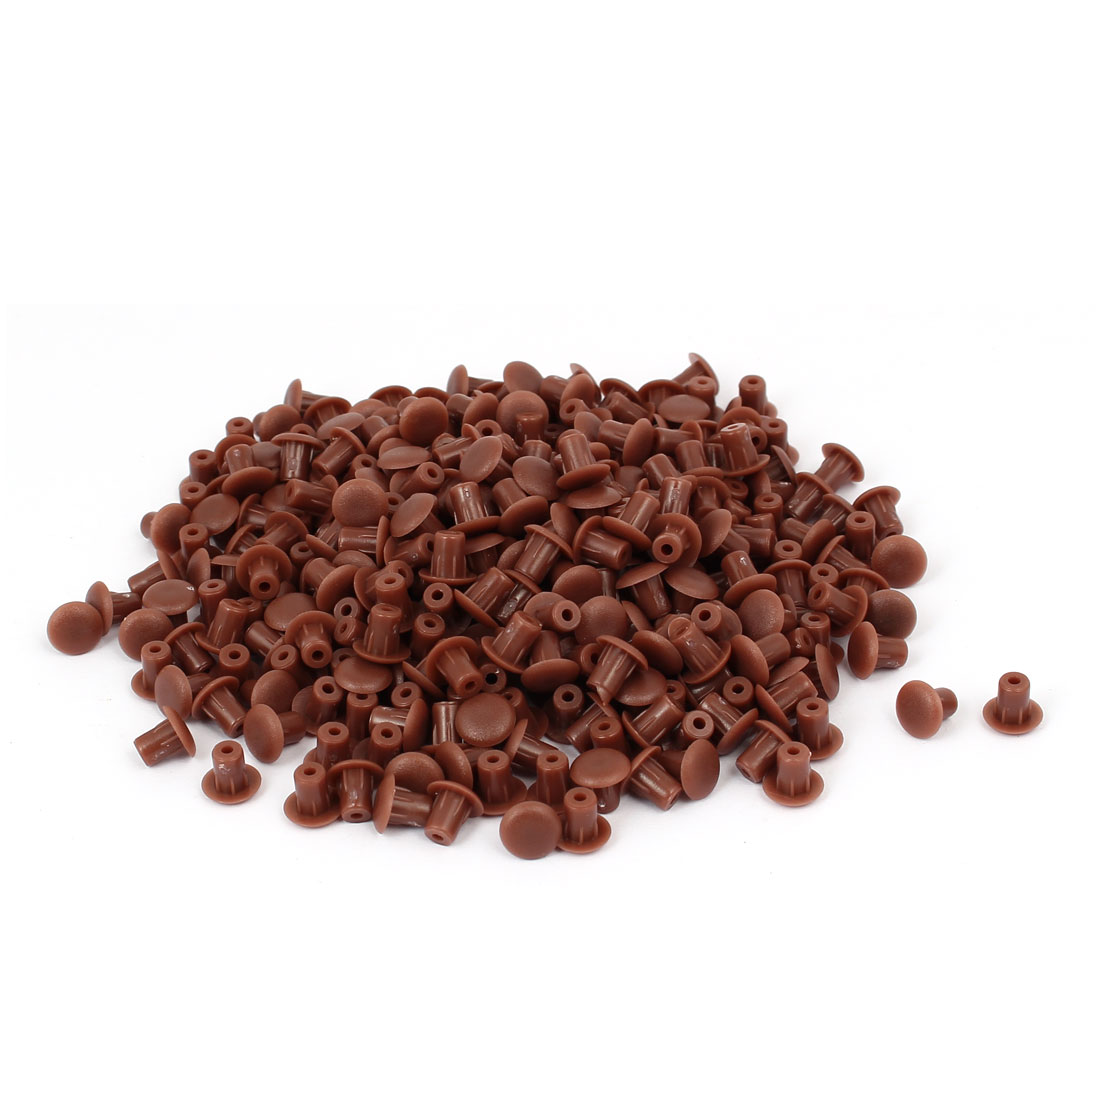 5mm 0.2-inch Dia Plastic Round Head Flush Type Hole Cap Cover Brown 500pcs